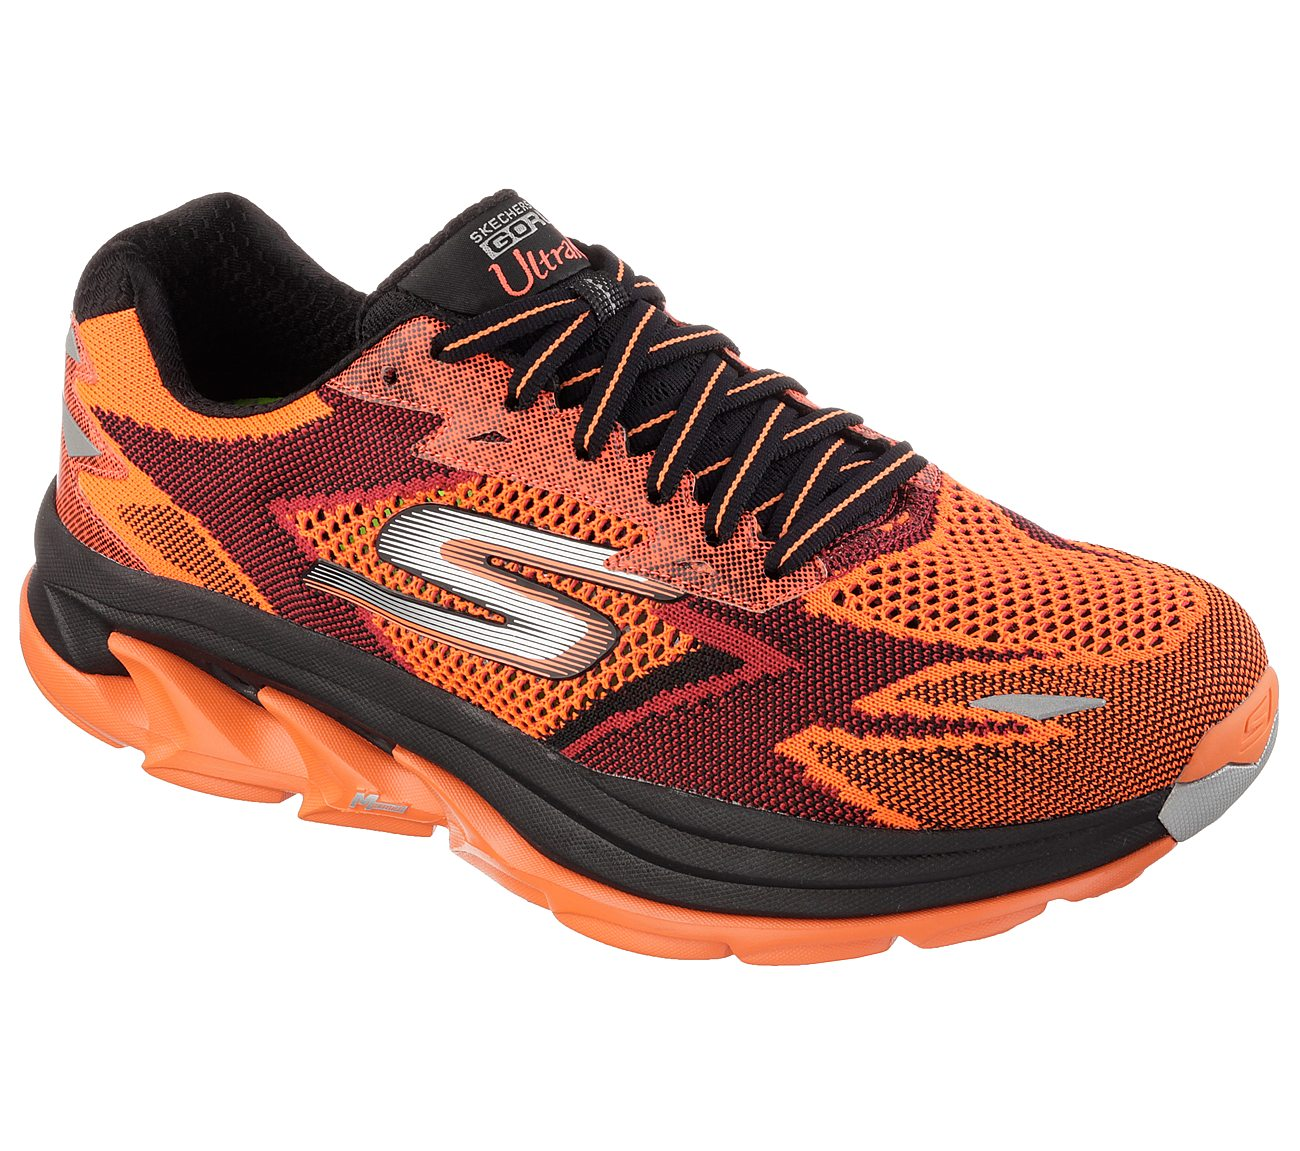 sketchers shoes hover to zoom JKVISUO